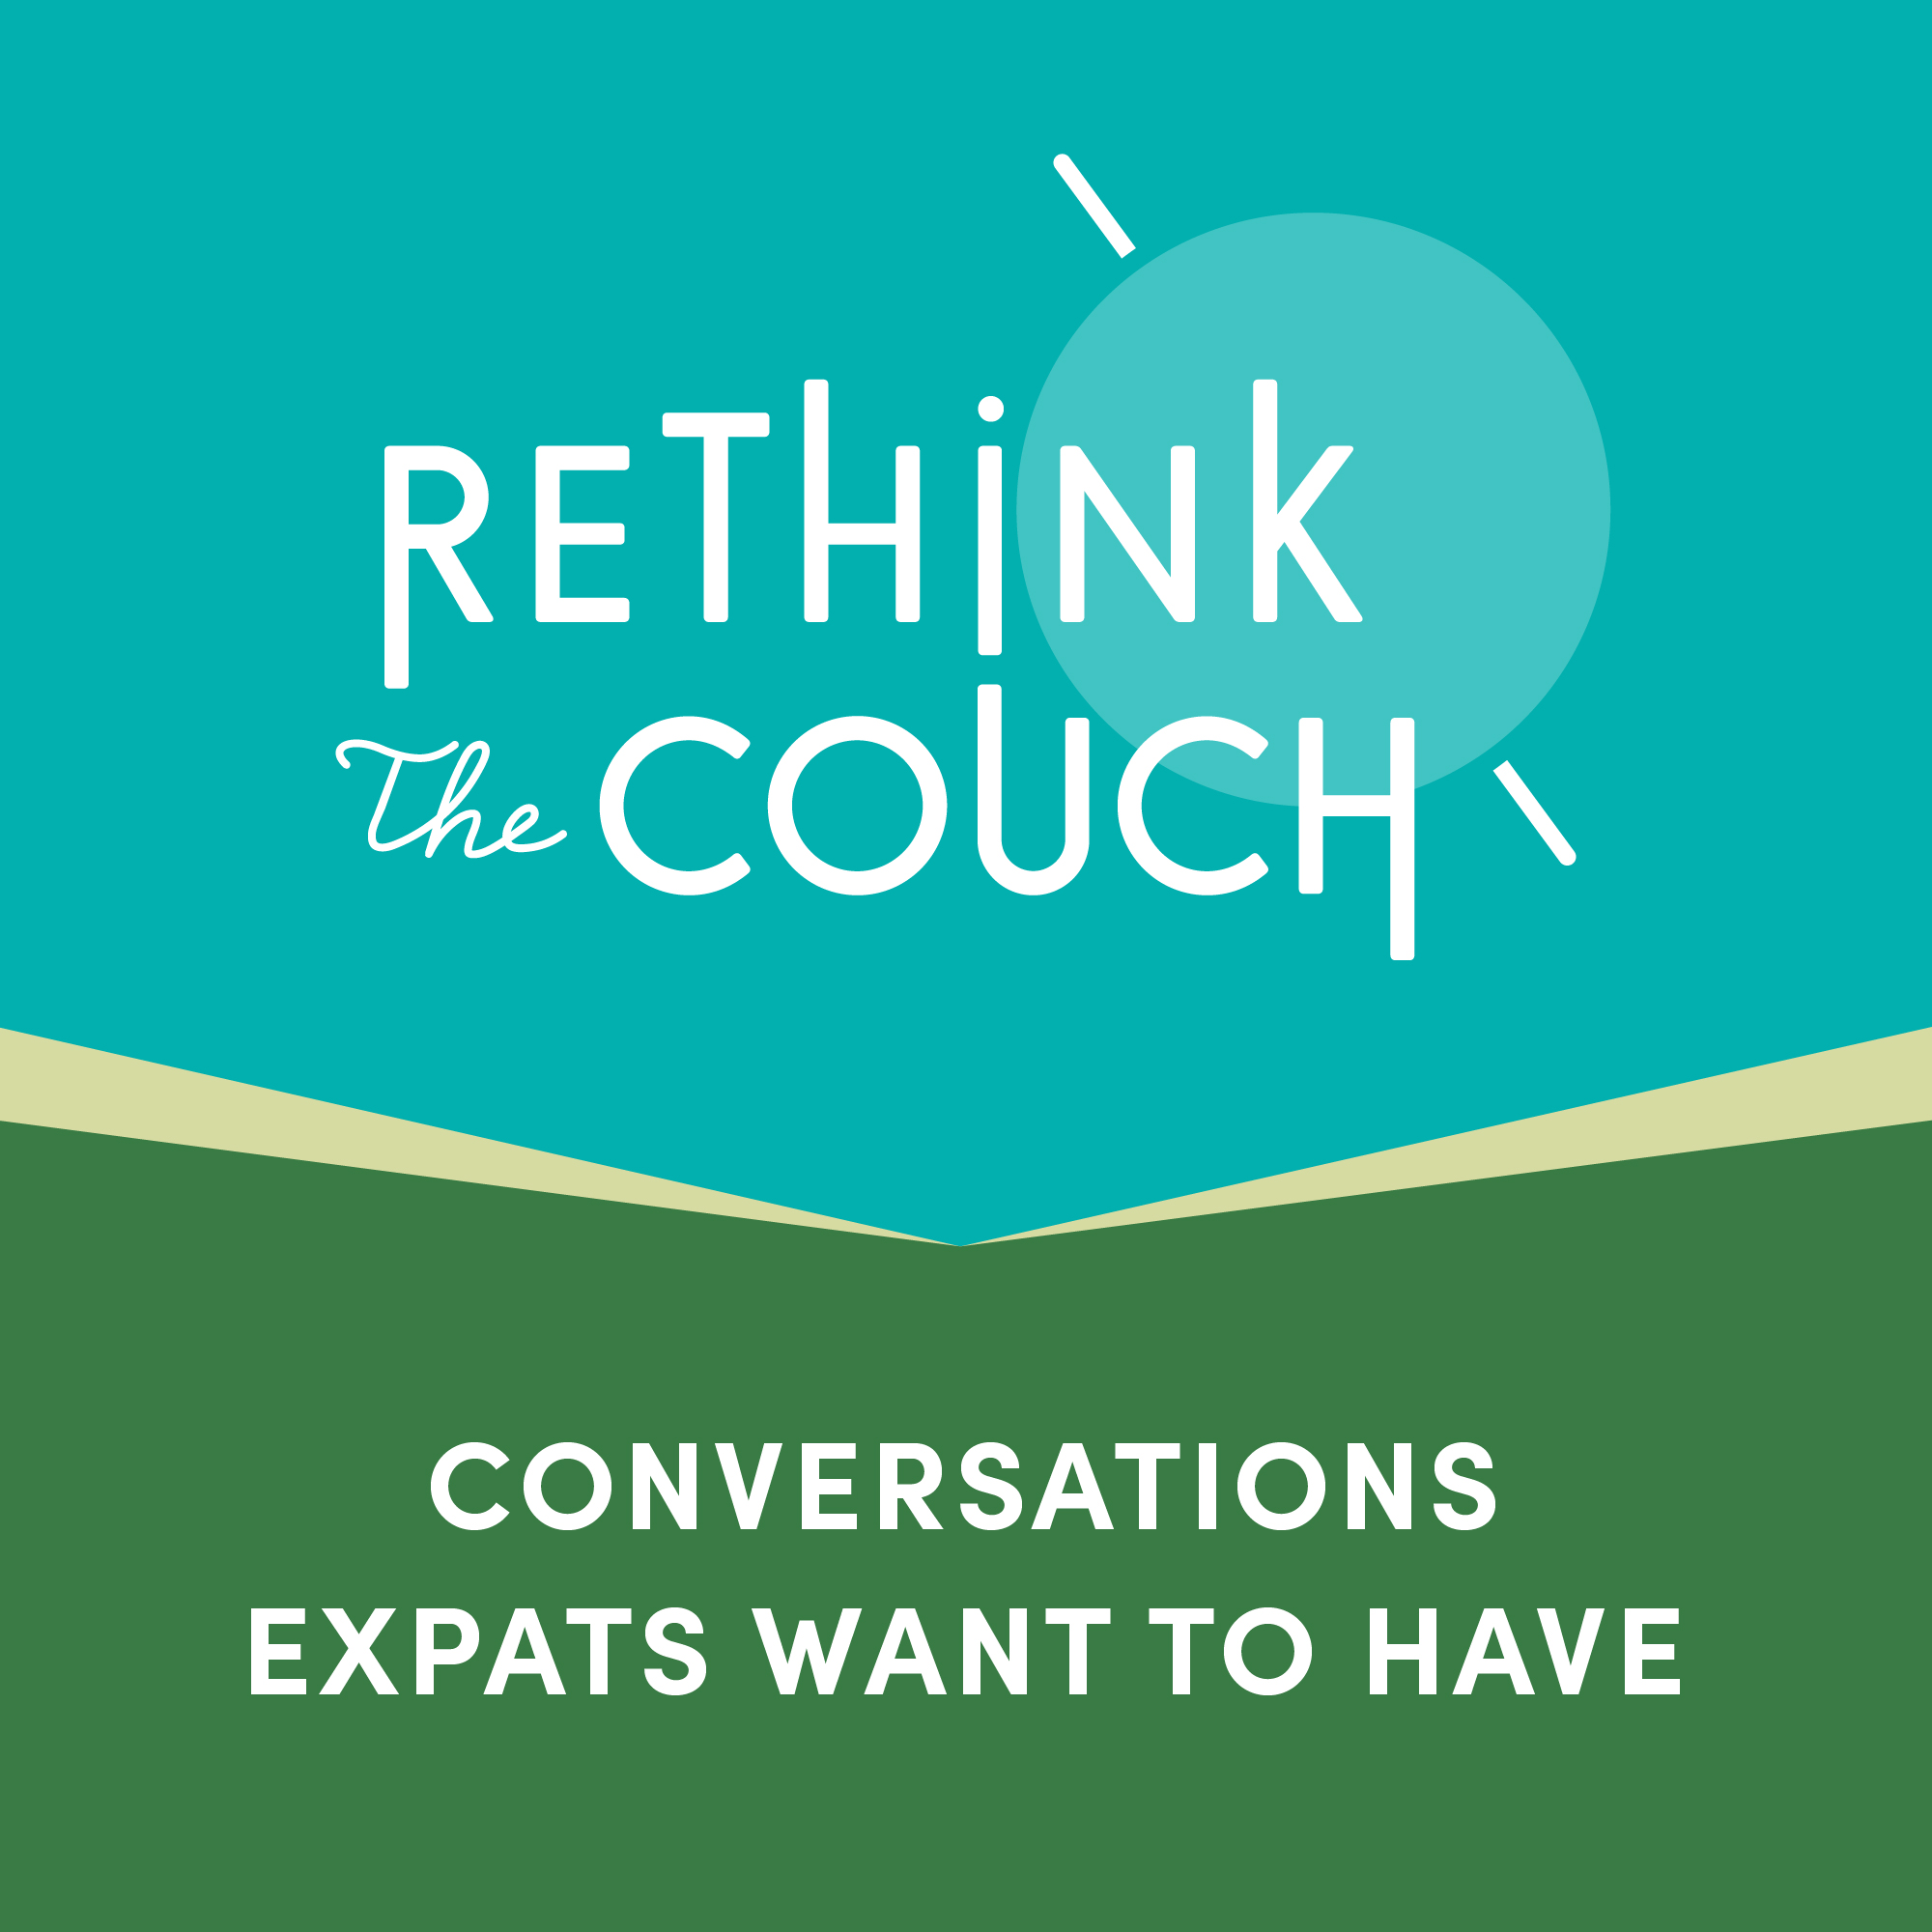 Rethink The Couch Podcast - Conversation Expats Want To Have